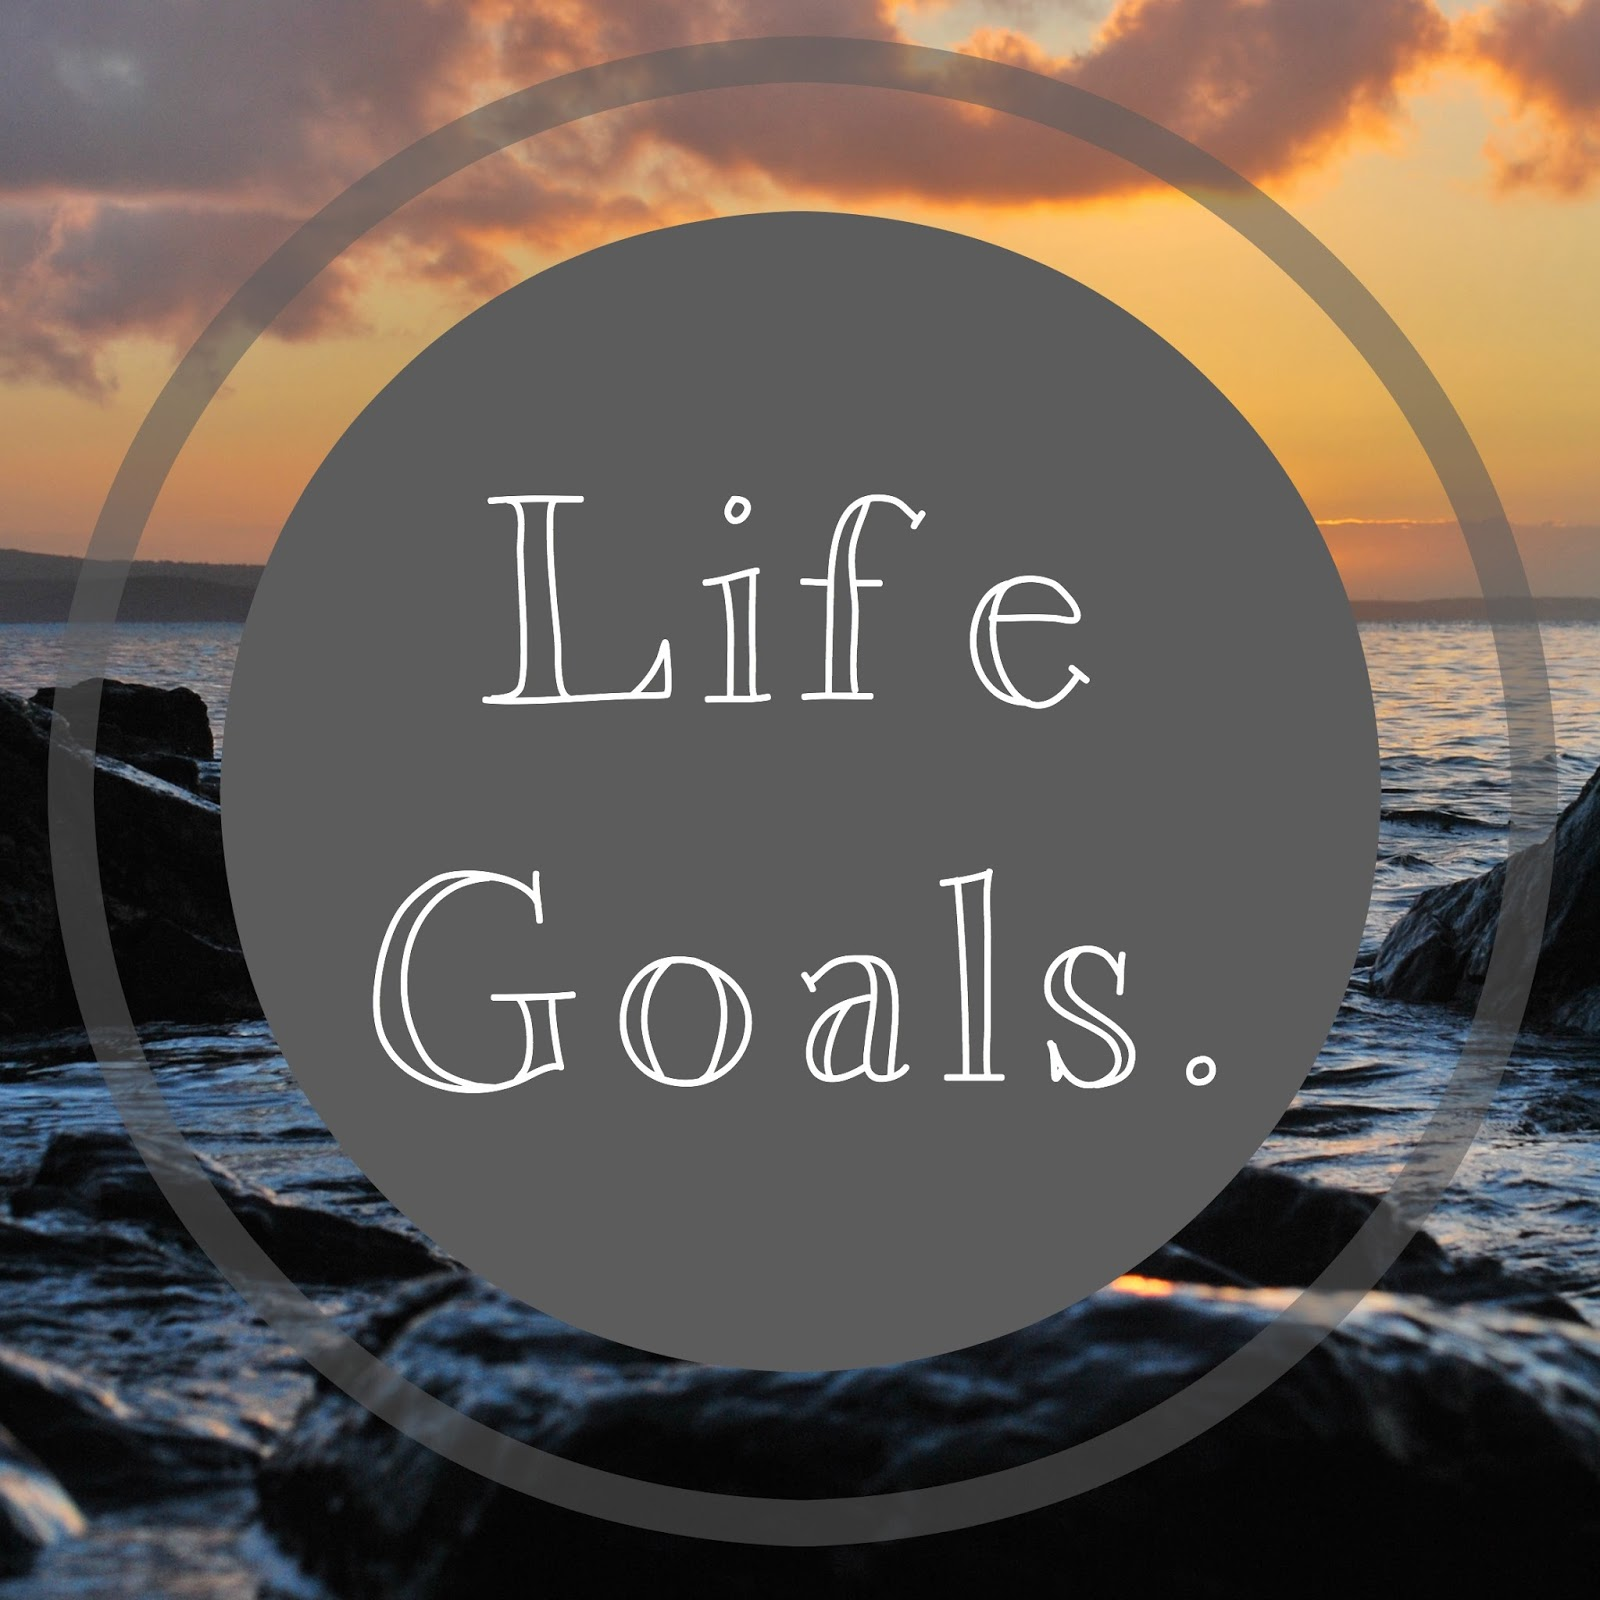 Essay about dreams and goals in life